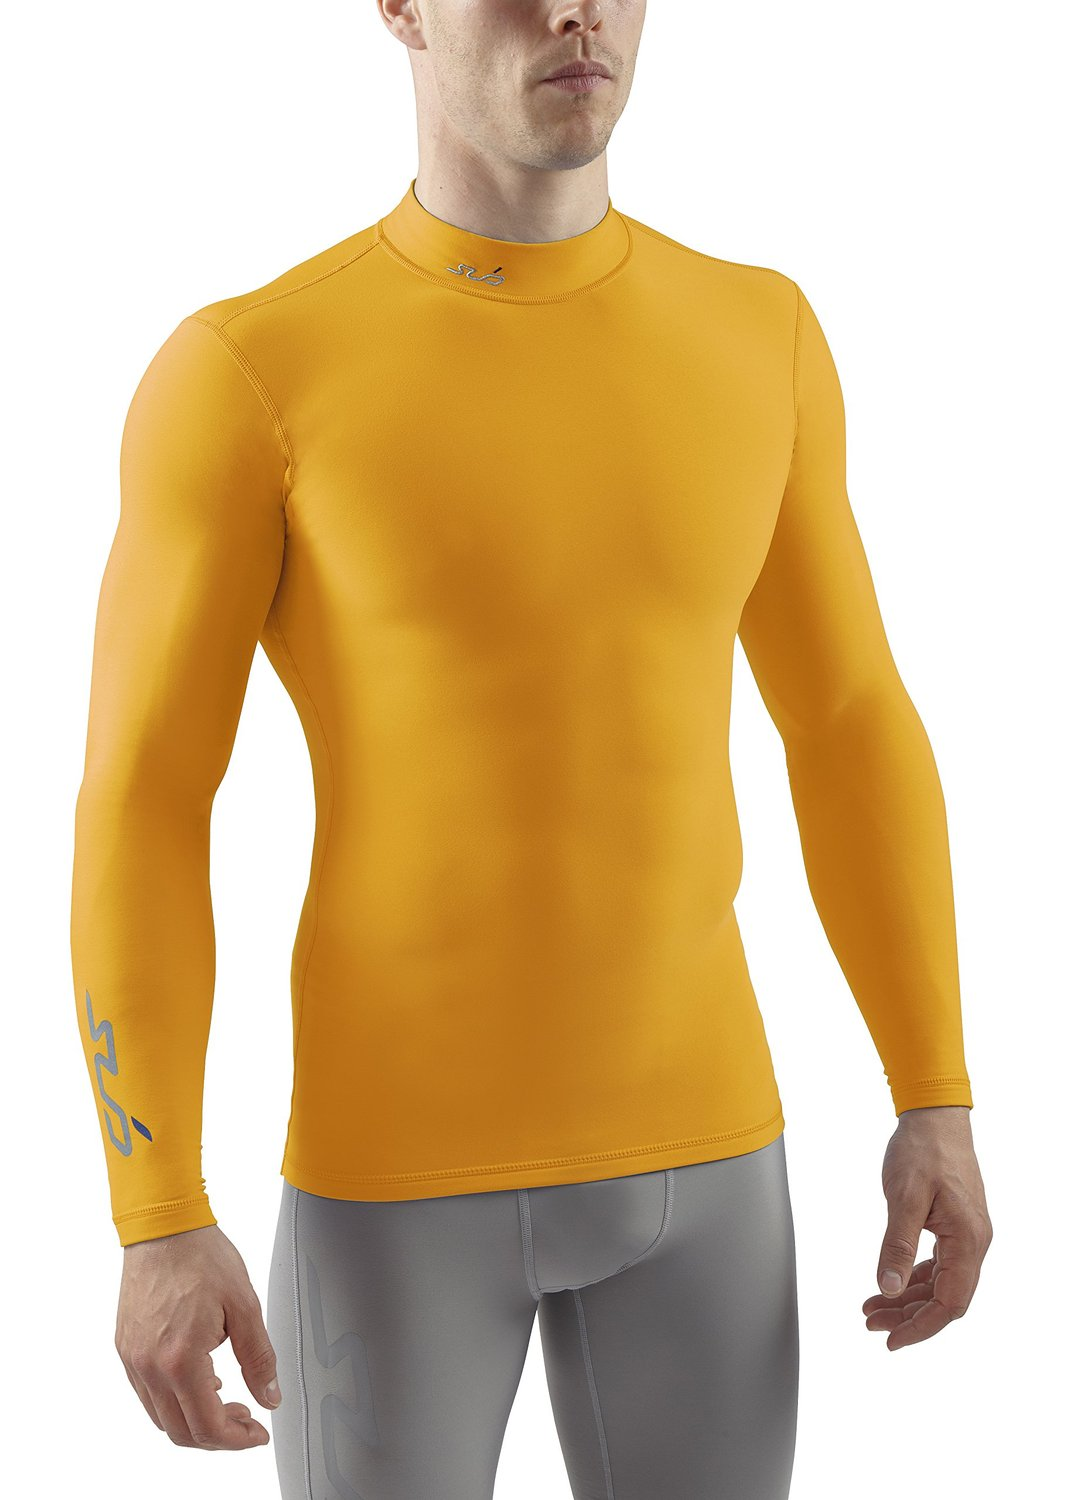 SUB Sports COLD Mens Compression Shirt - Mock Neck Long Sleeve Top Thermal Base Layer